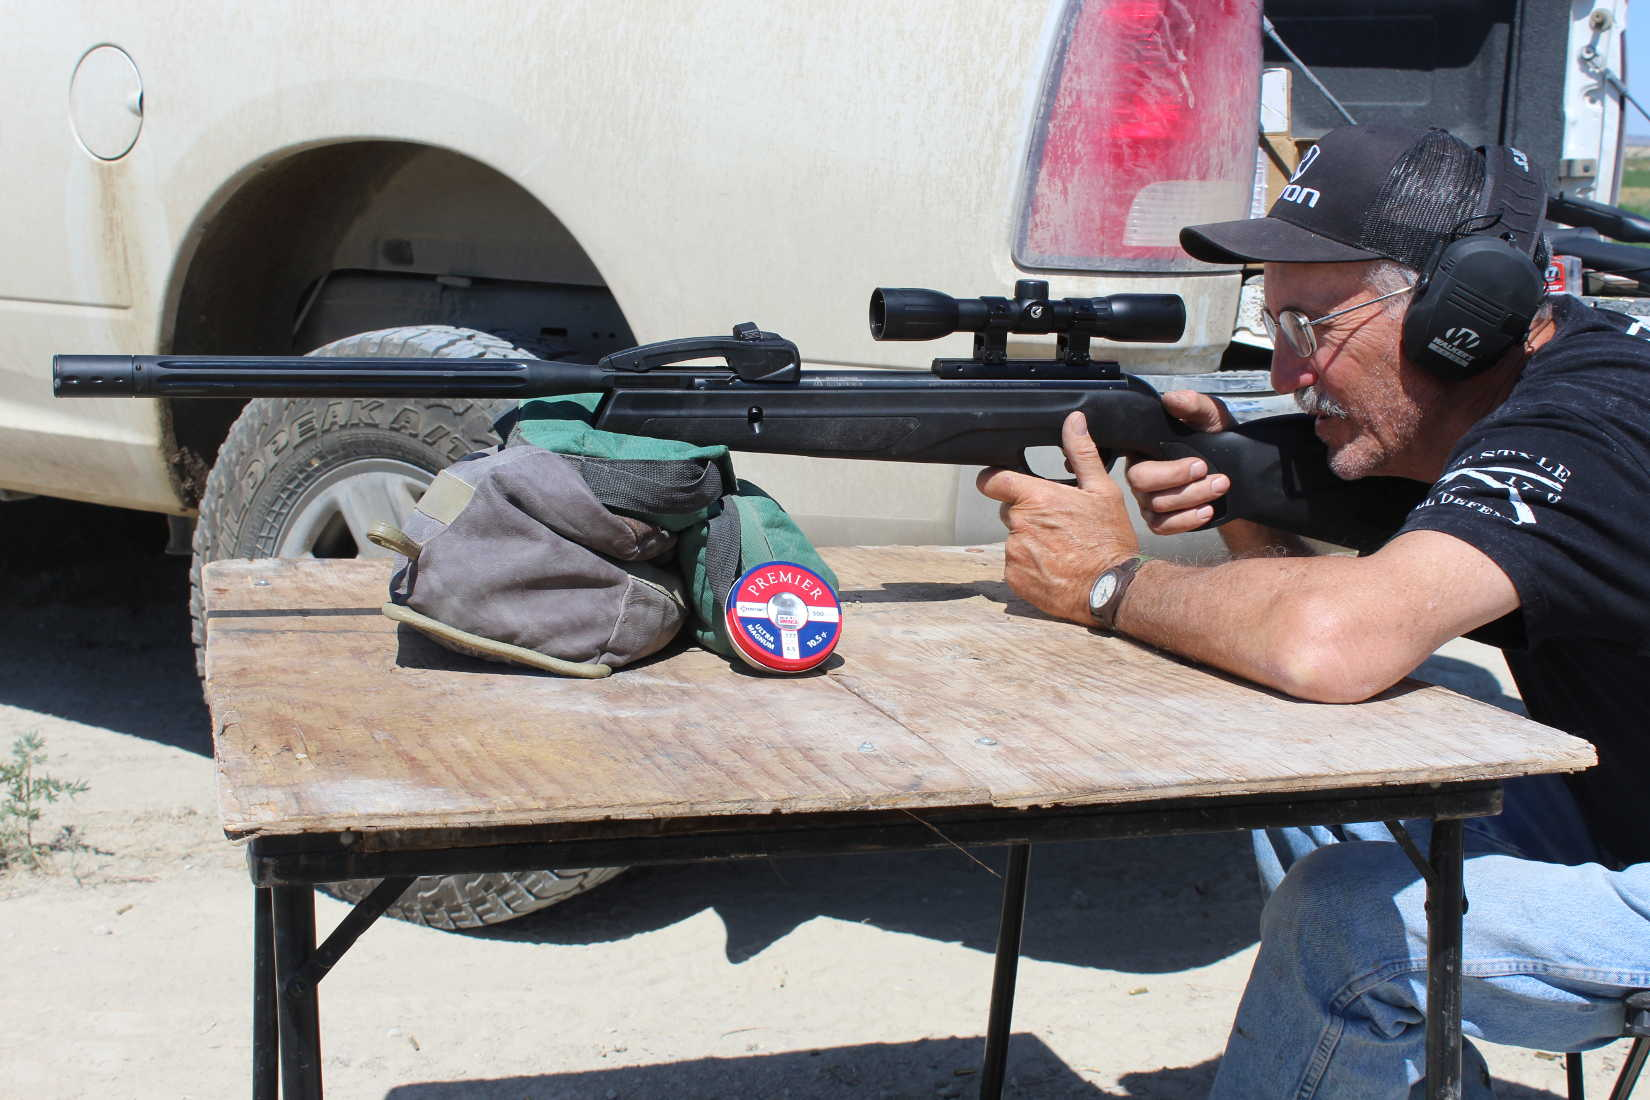 Product Review: The GAMO Swarm Whisper Air Rifle